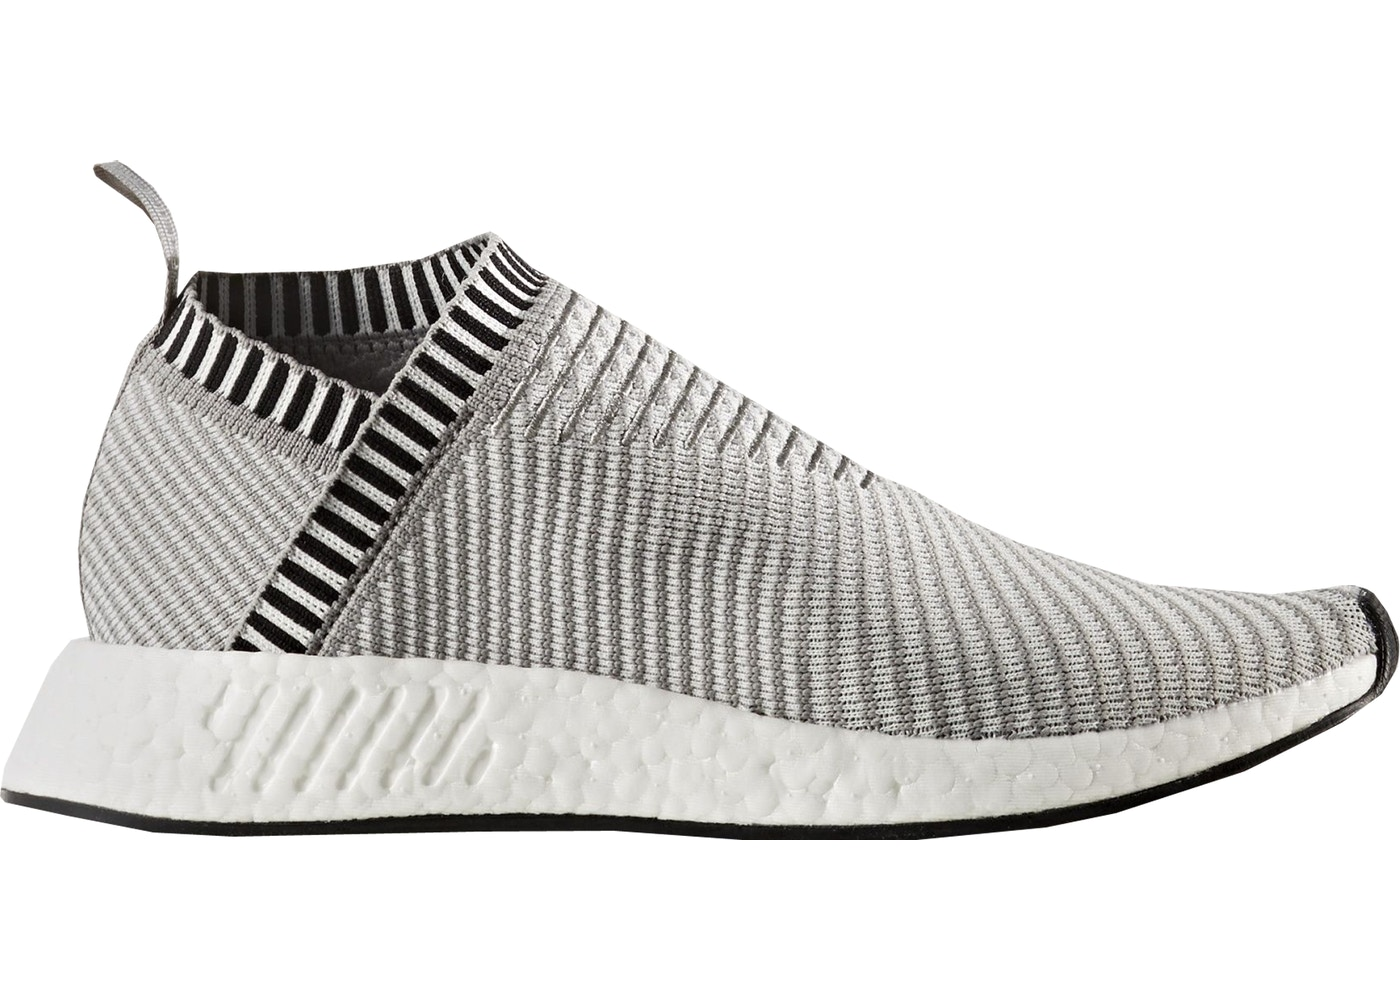 8f4a00914ce8a Buy adidas NMD CS2 Shoes   Deadstock Sneakers